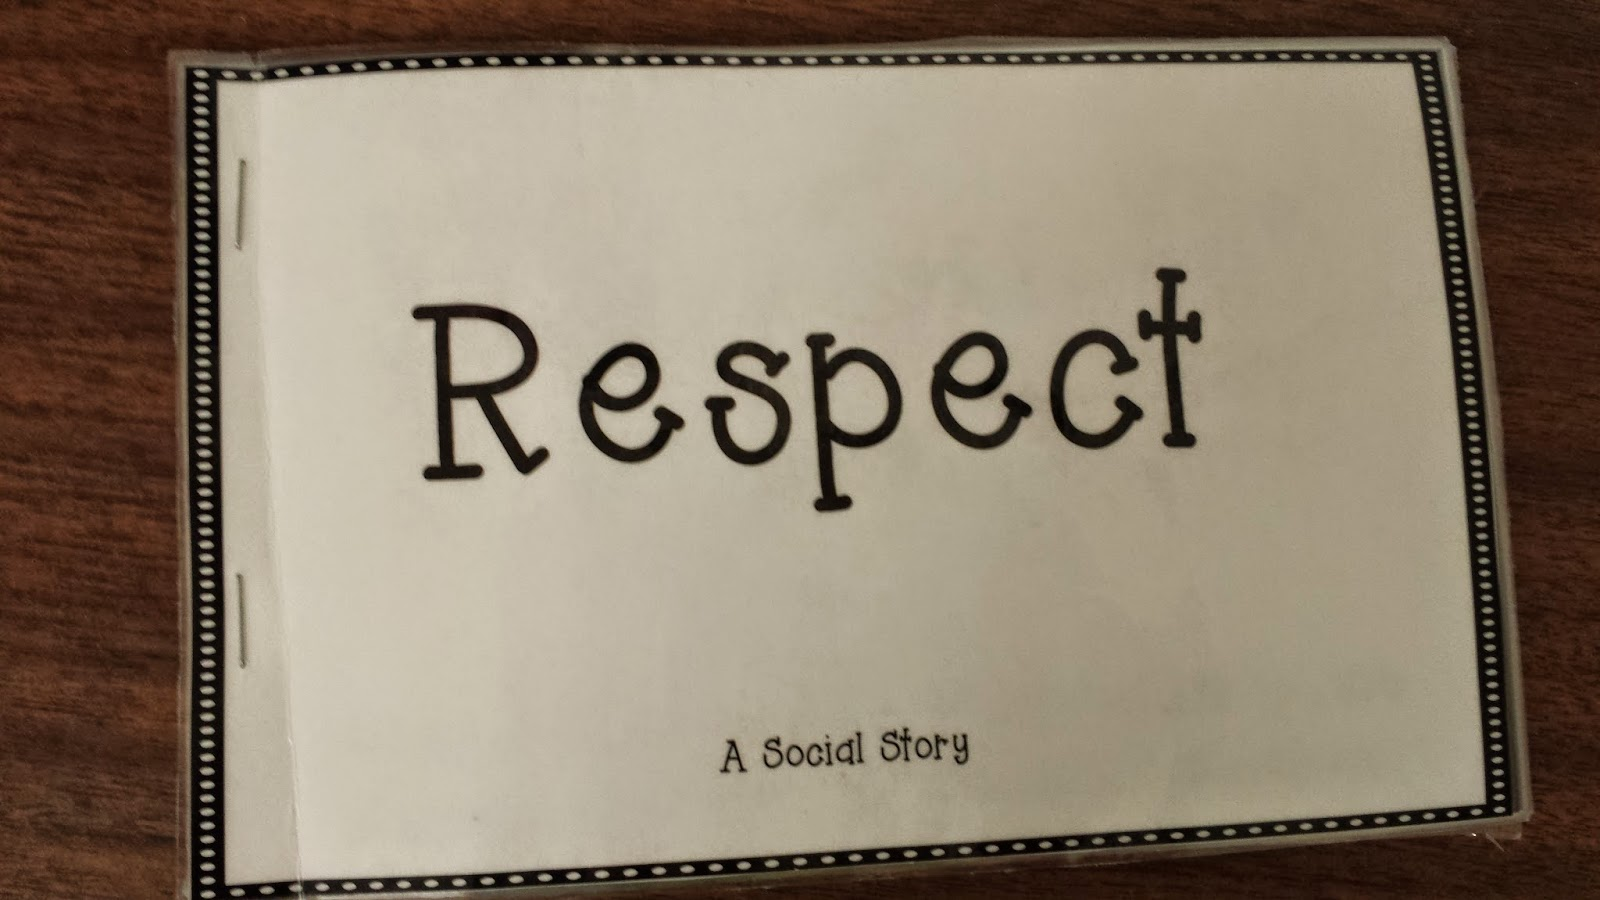 Photo of the cover of the social story about respect.